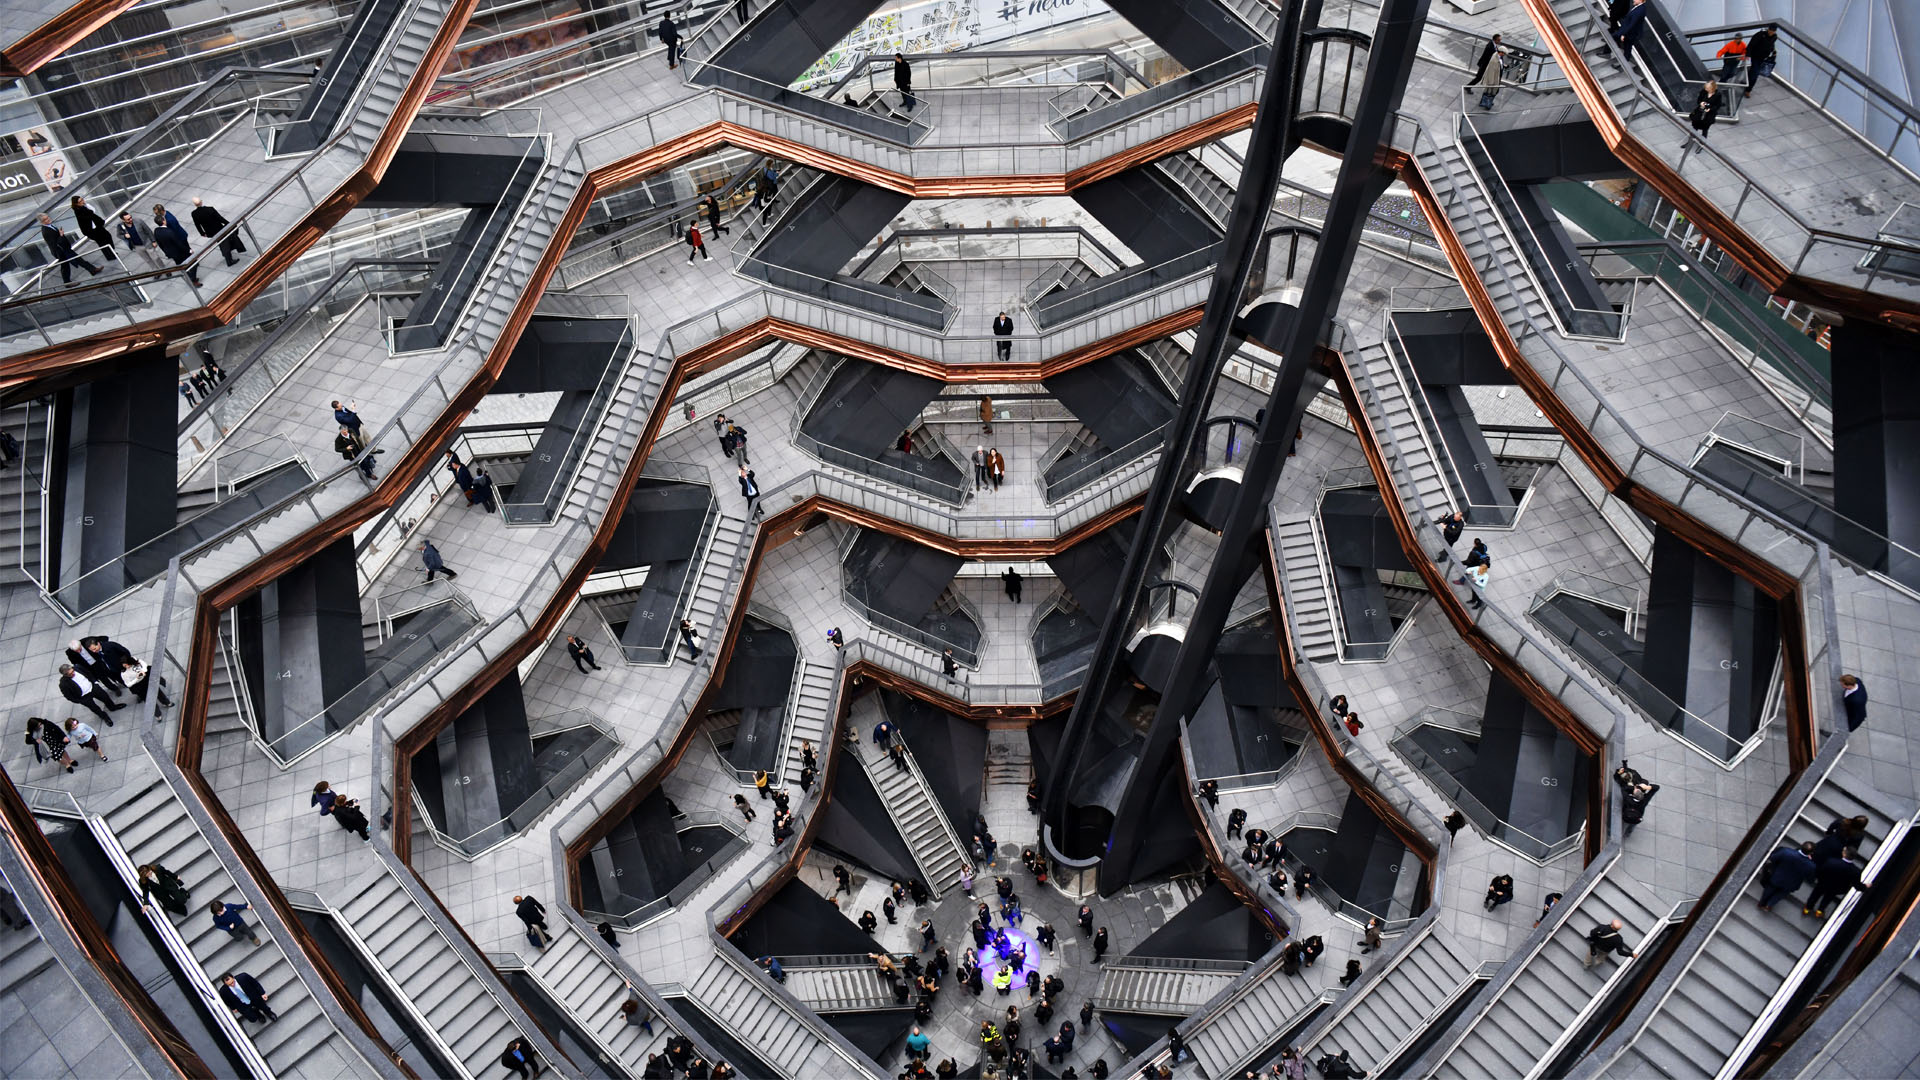 Vessel at the Hudson Yards, New York | STIRring Experiences | STIRworld